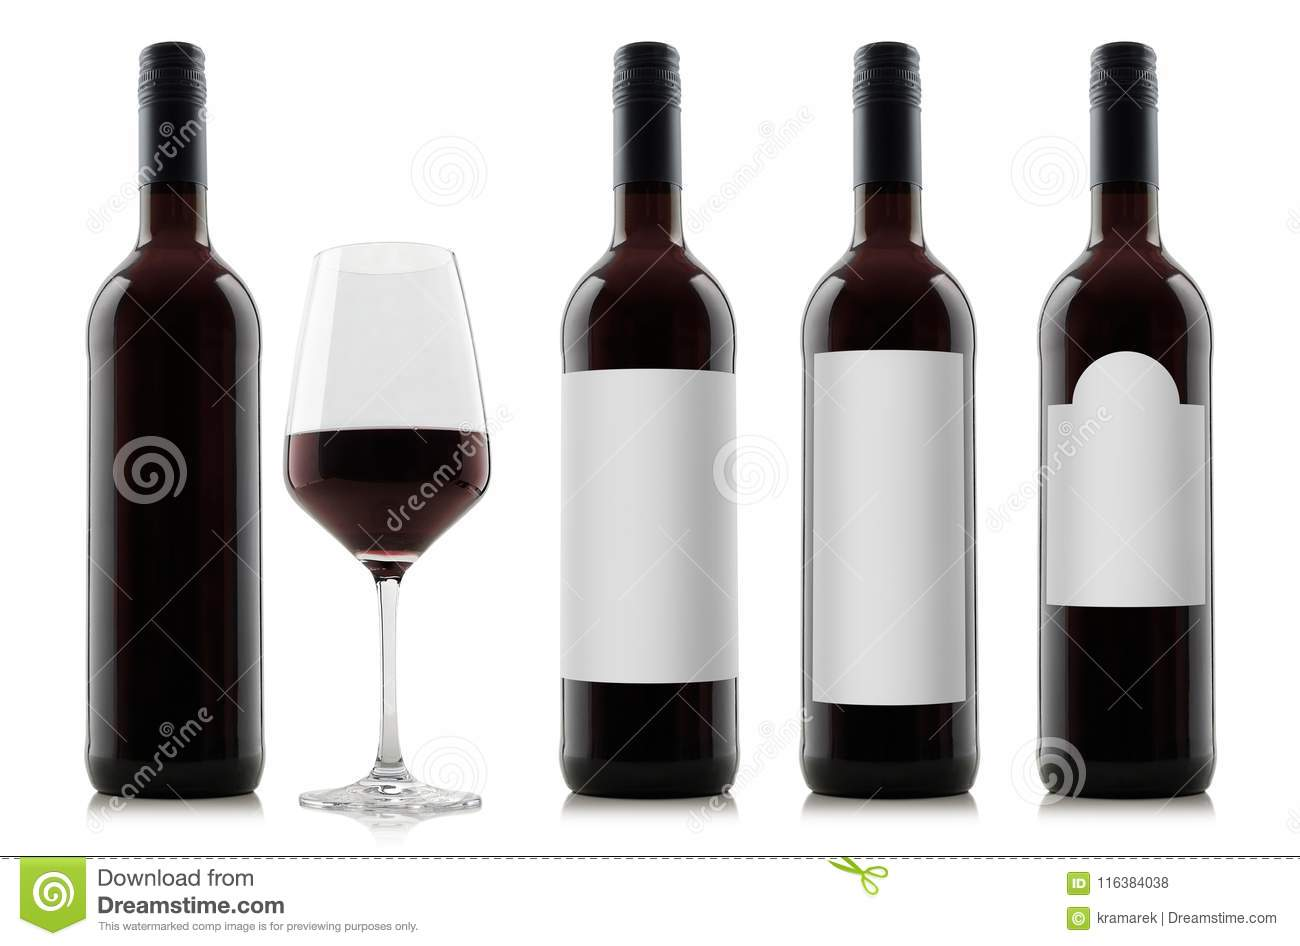 Mock-up of red wine bottles with blank white labels and a glass of wine